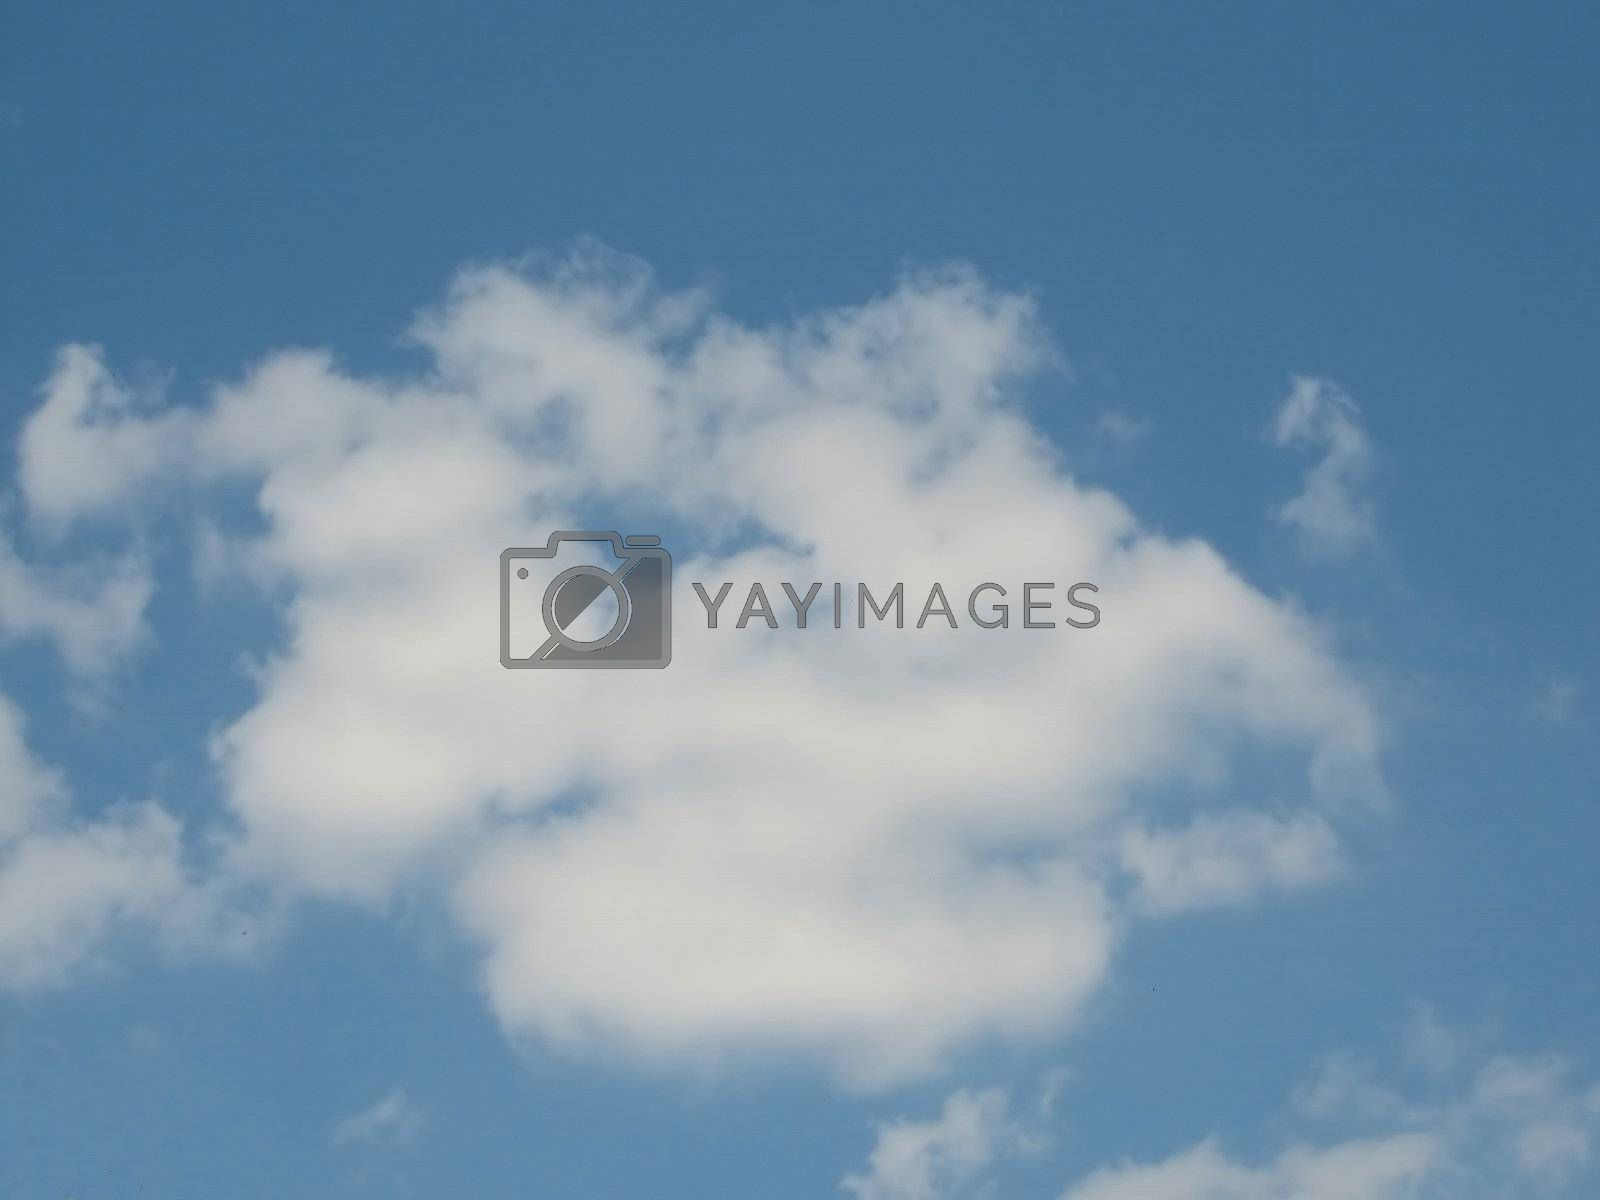 Sky with good-weather-clouds, usable as background